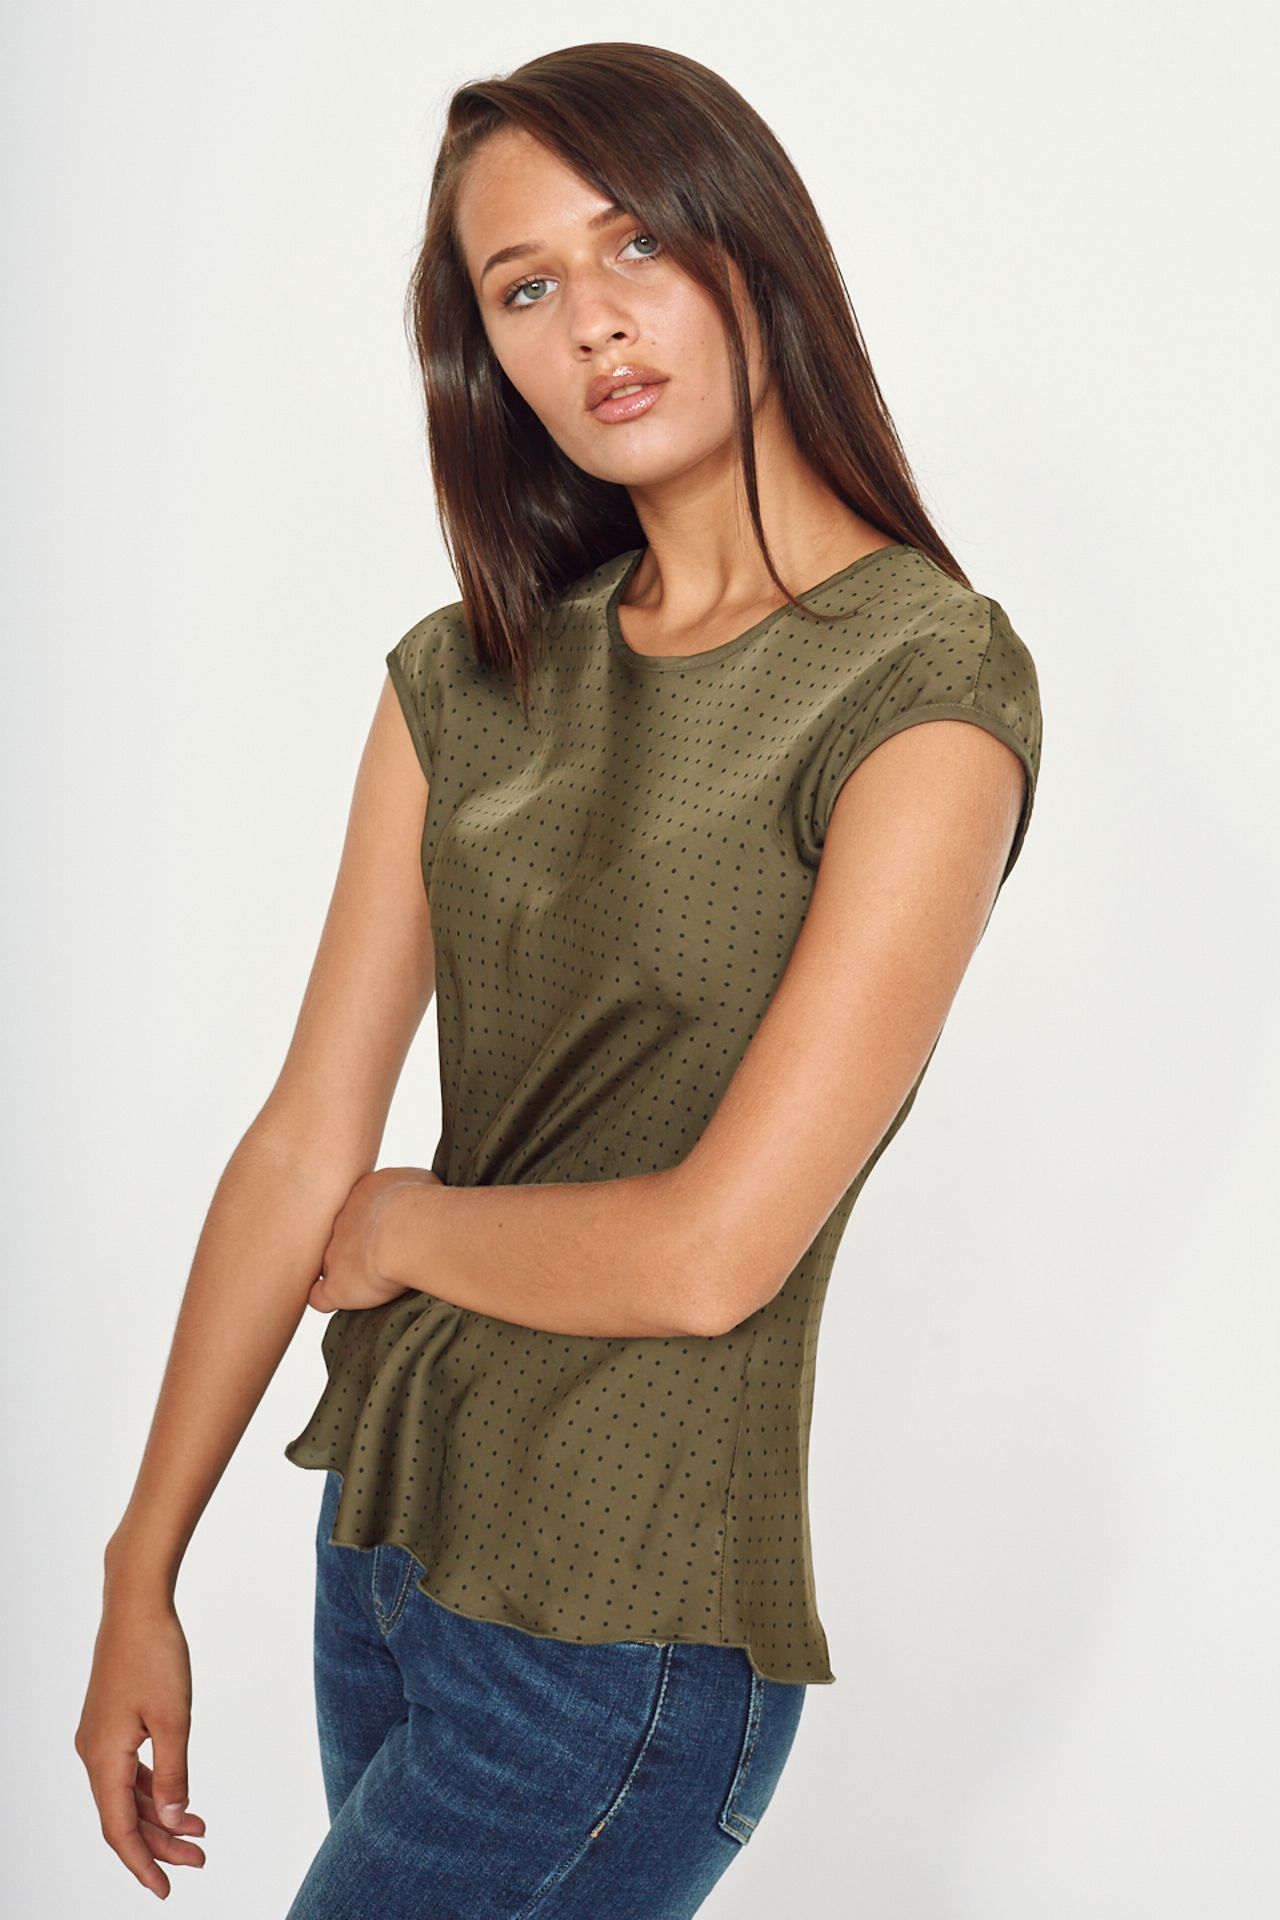 Blusa pois sbiego military - Autunno 2020 - Inverno 2021 | Brend